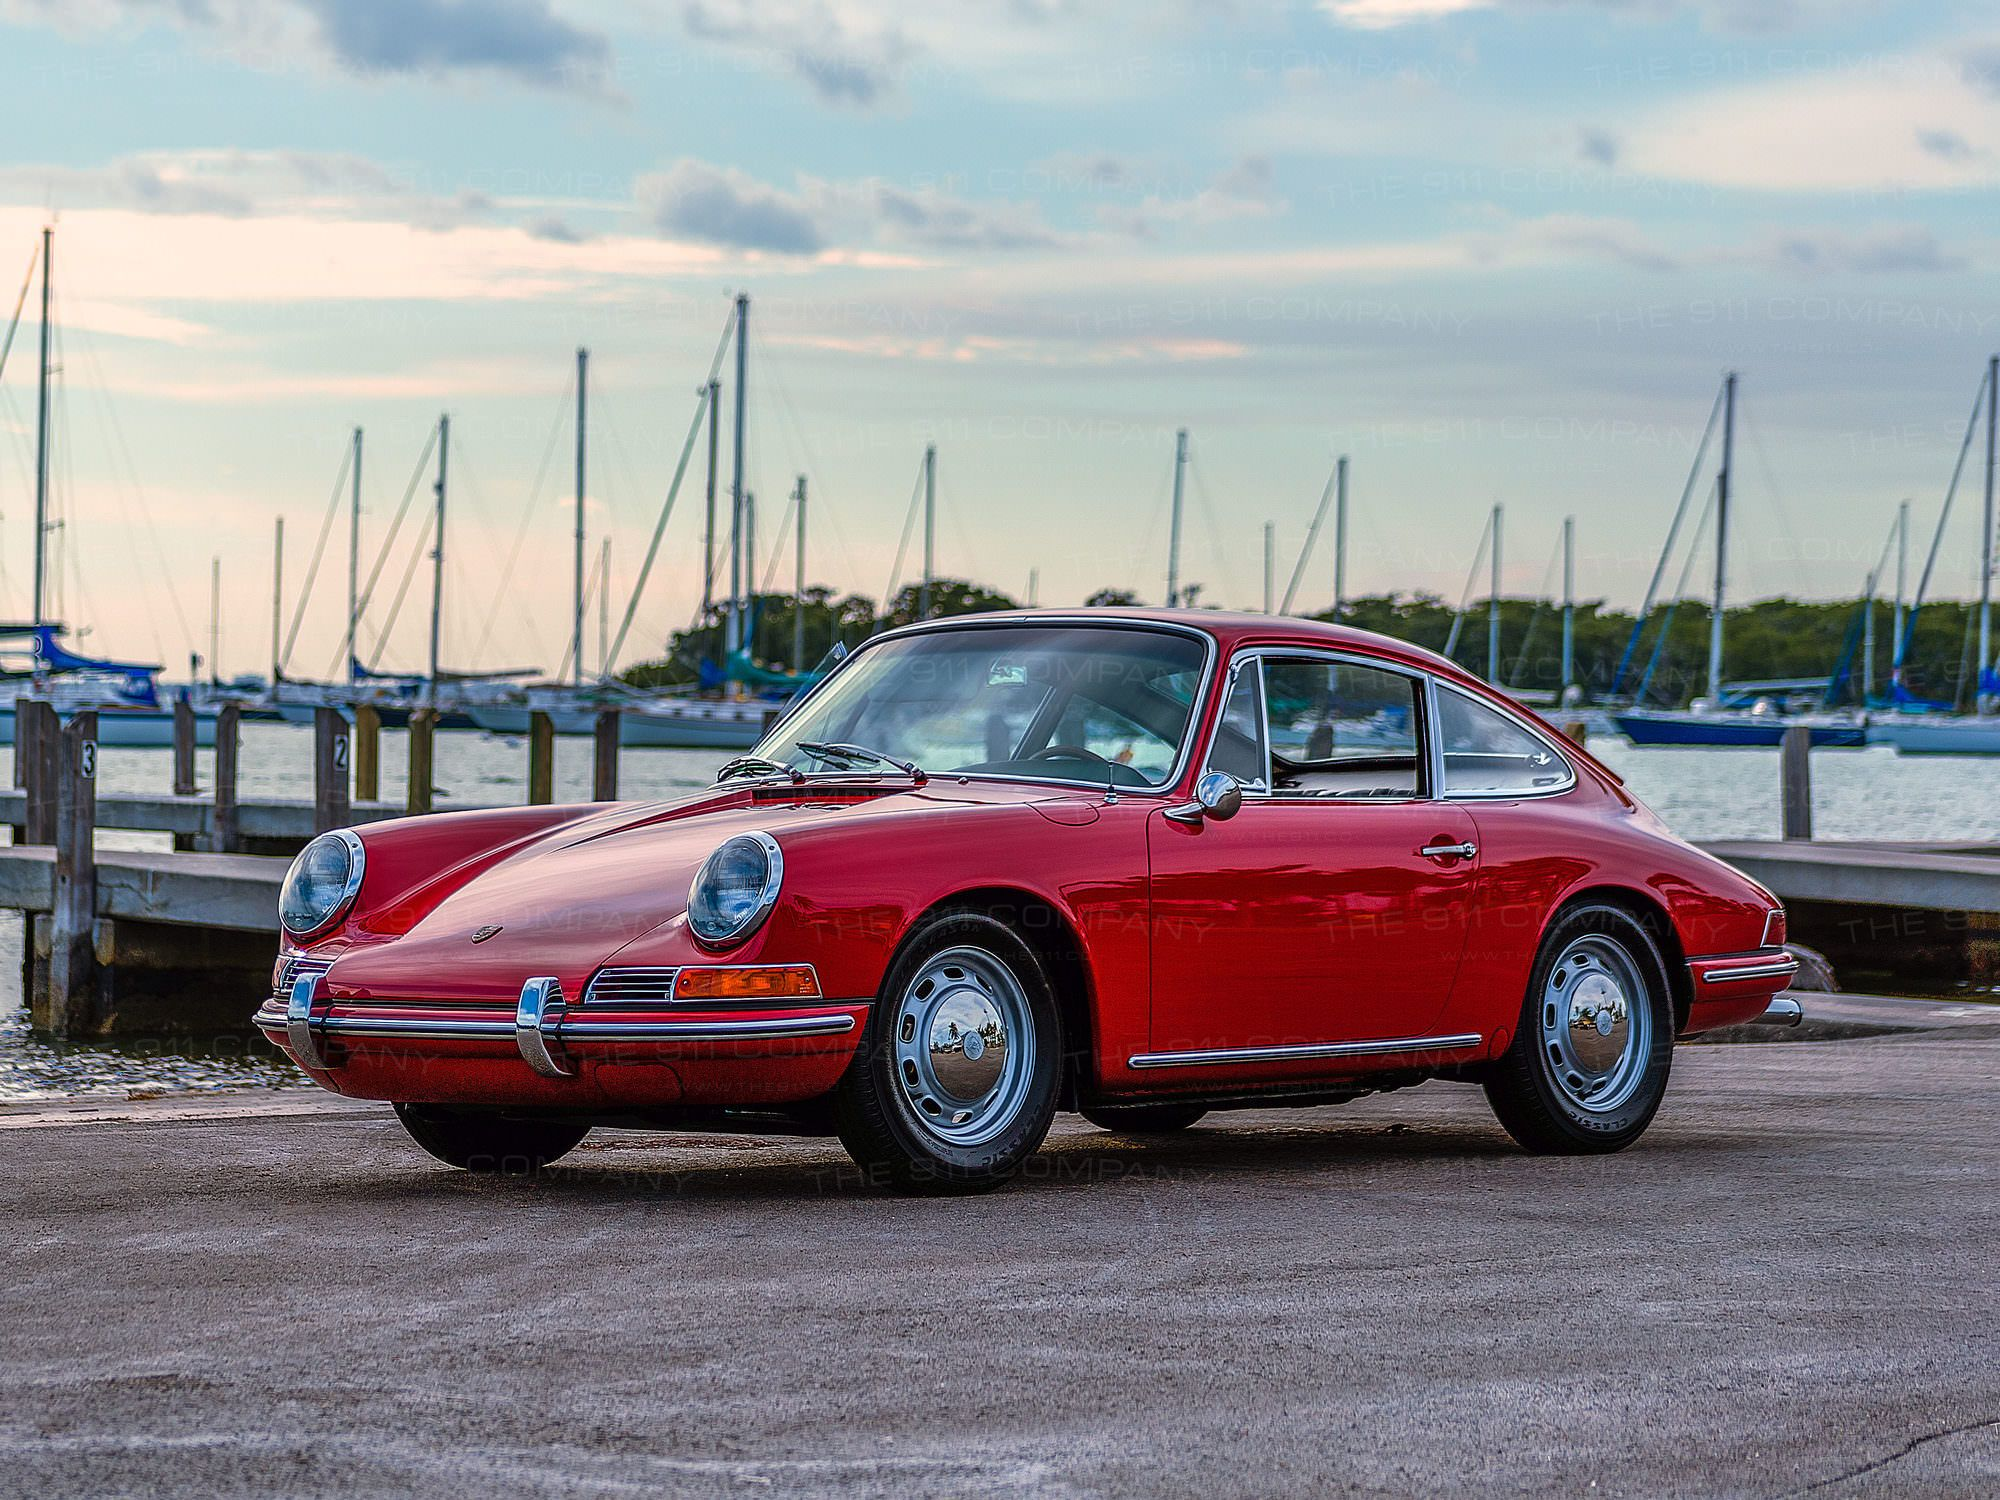 View details of this Polo Red 1965 Porsche 911. Highlights include ...